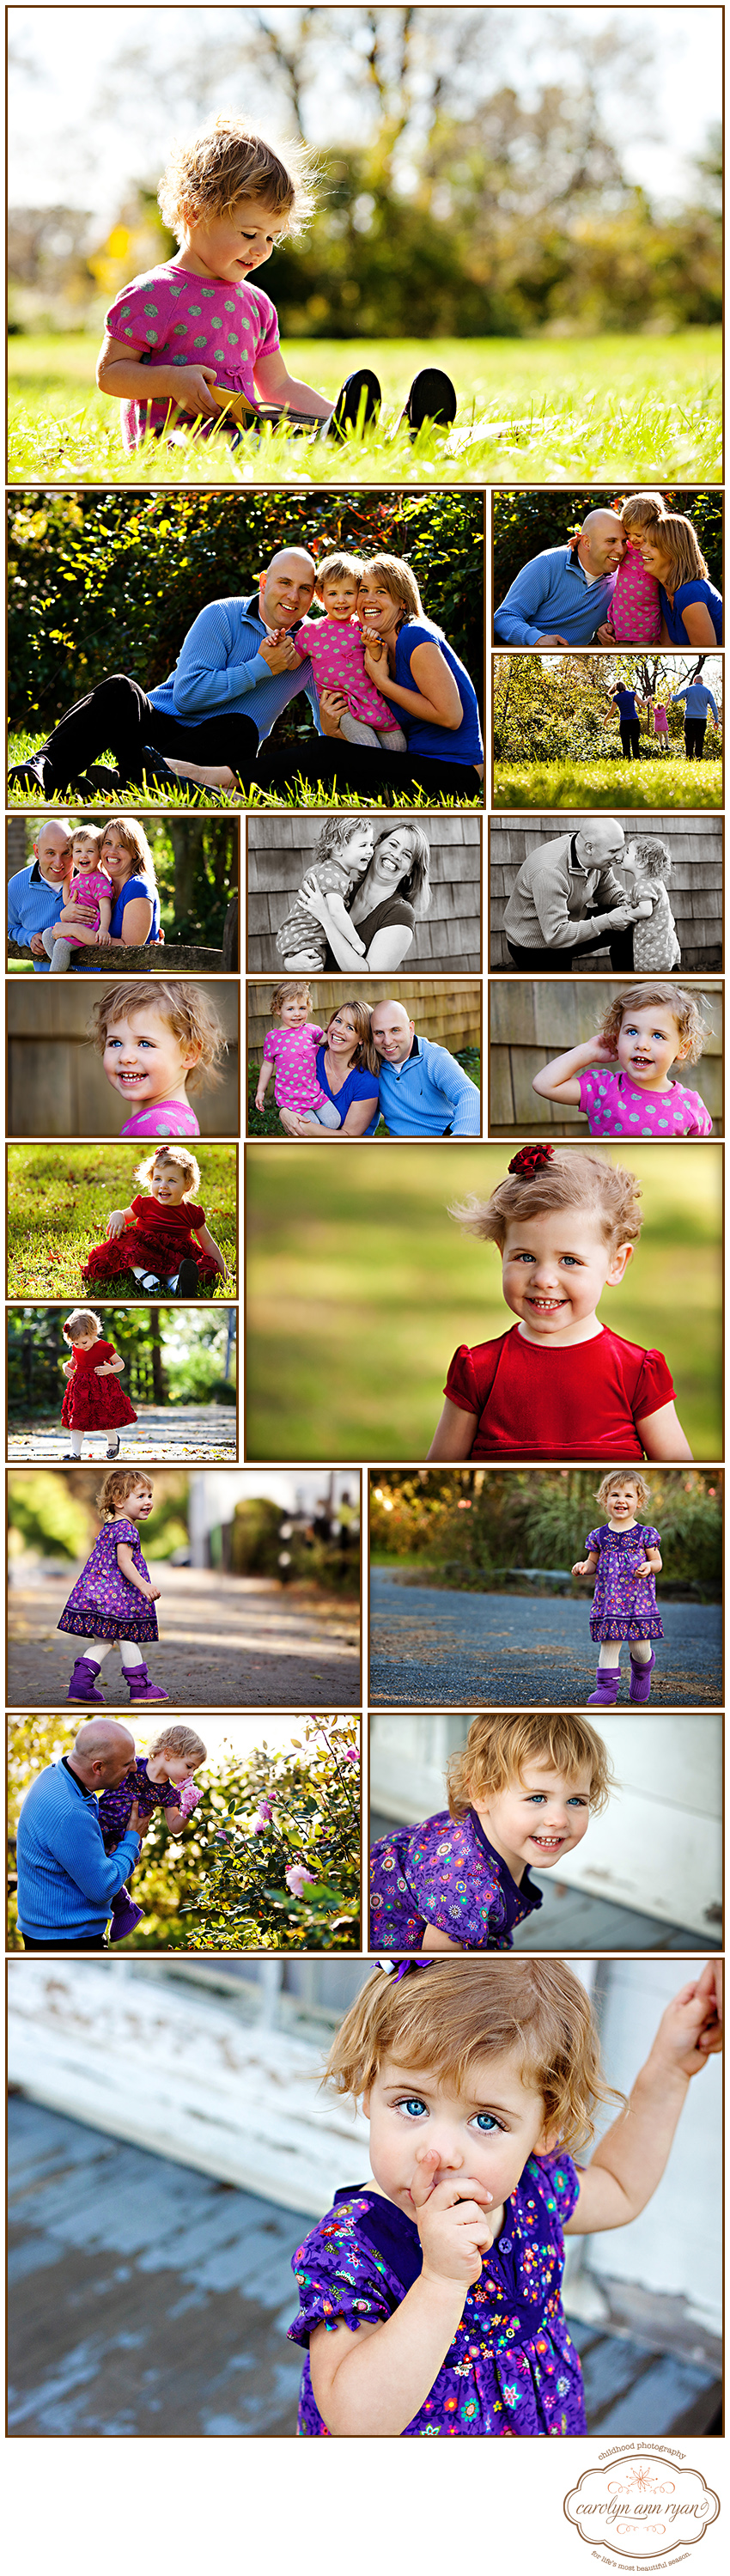 Marvin, North Carolina Family Photographer